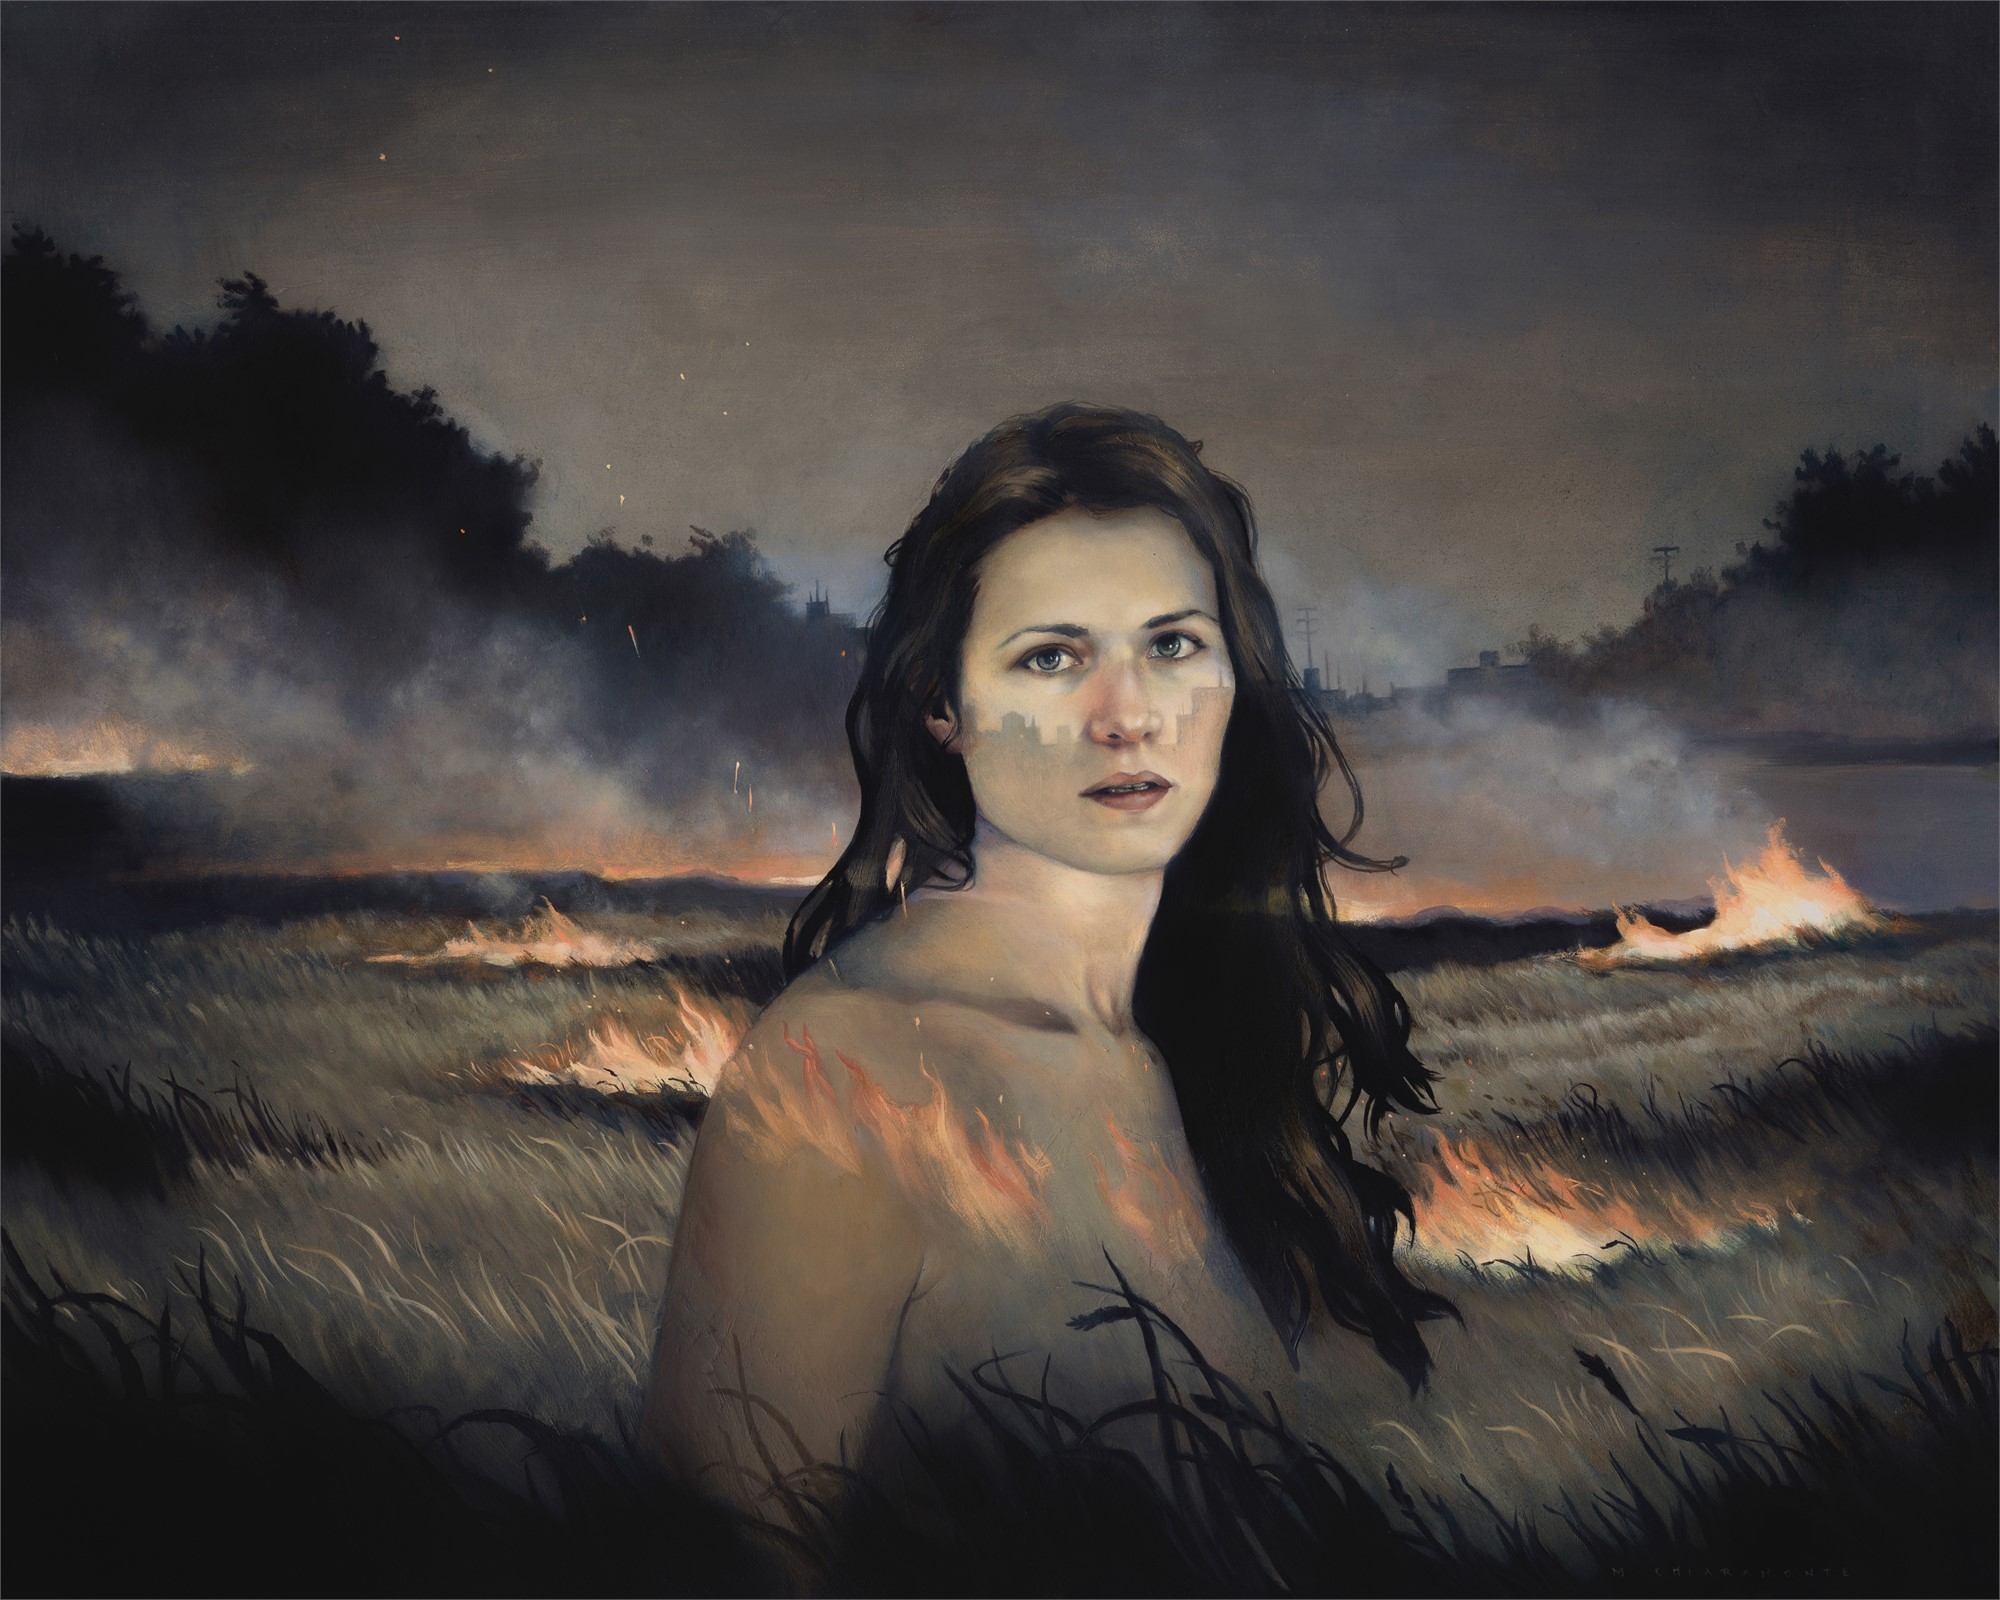 I Taste the Flame by Mary Chiaramonte